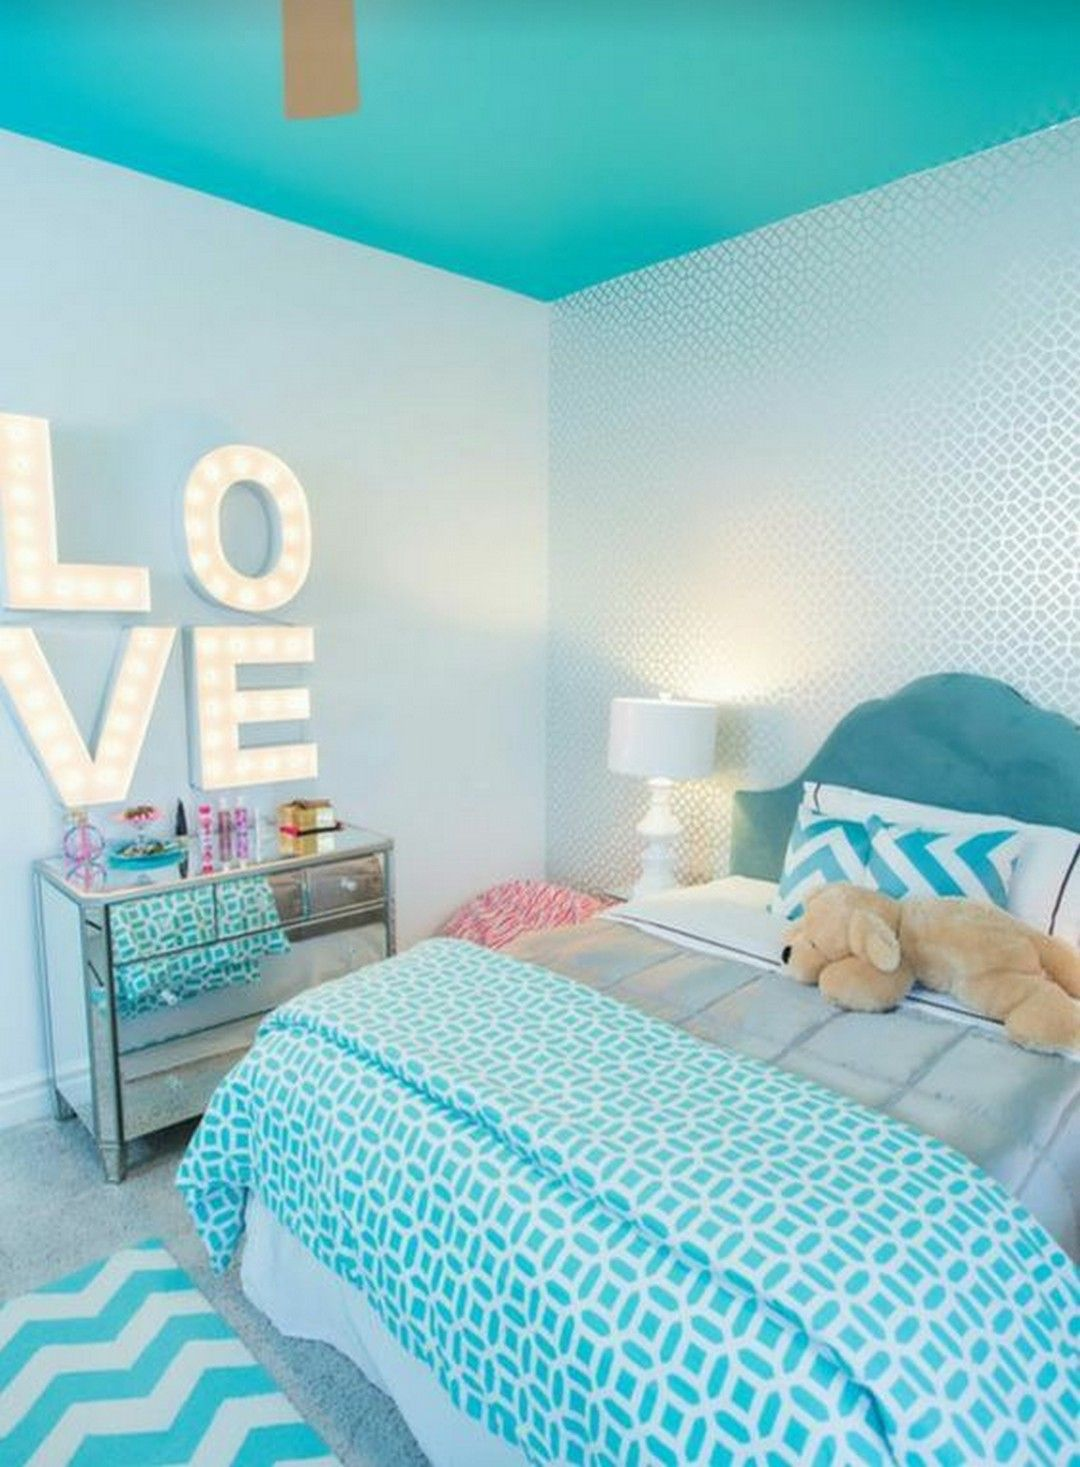 Exceptionnel Simple Way Of Renovating Young Lady Bedroom Design With These Great Ideas  Https://